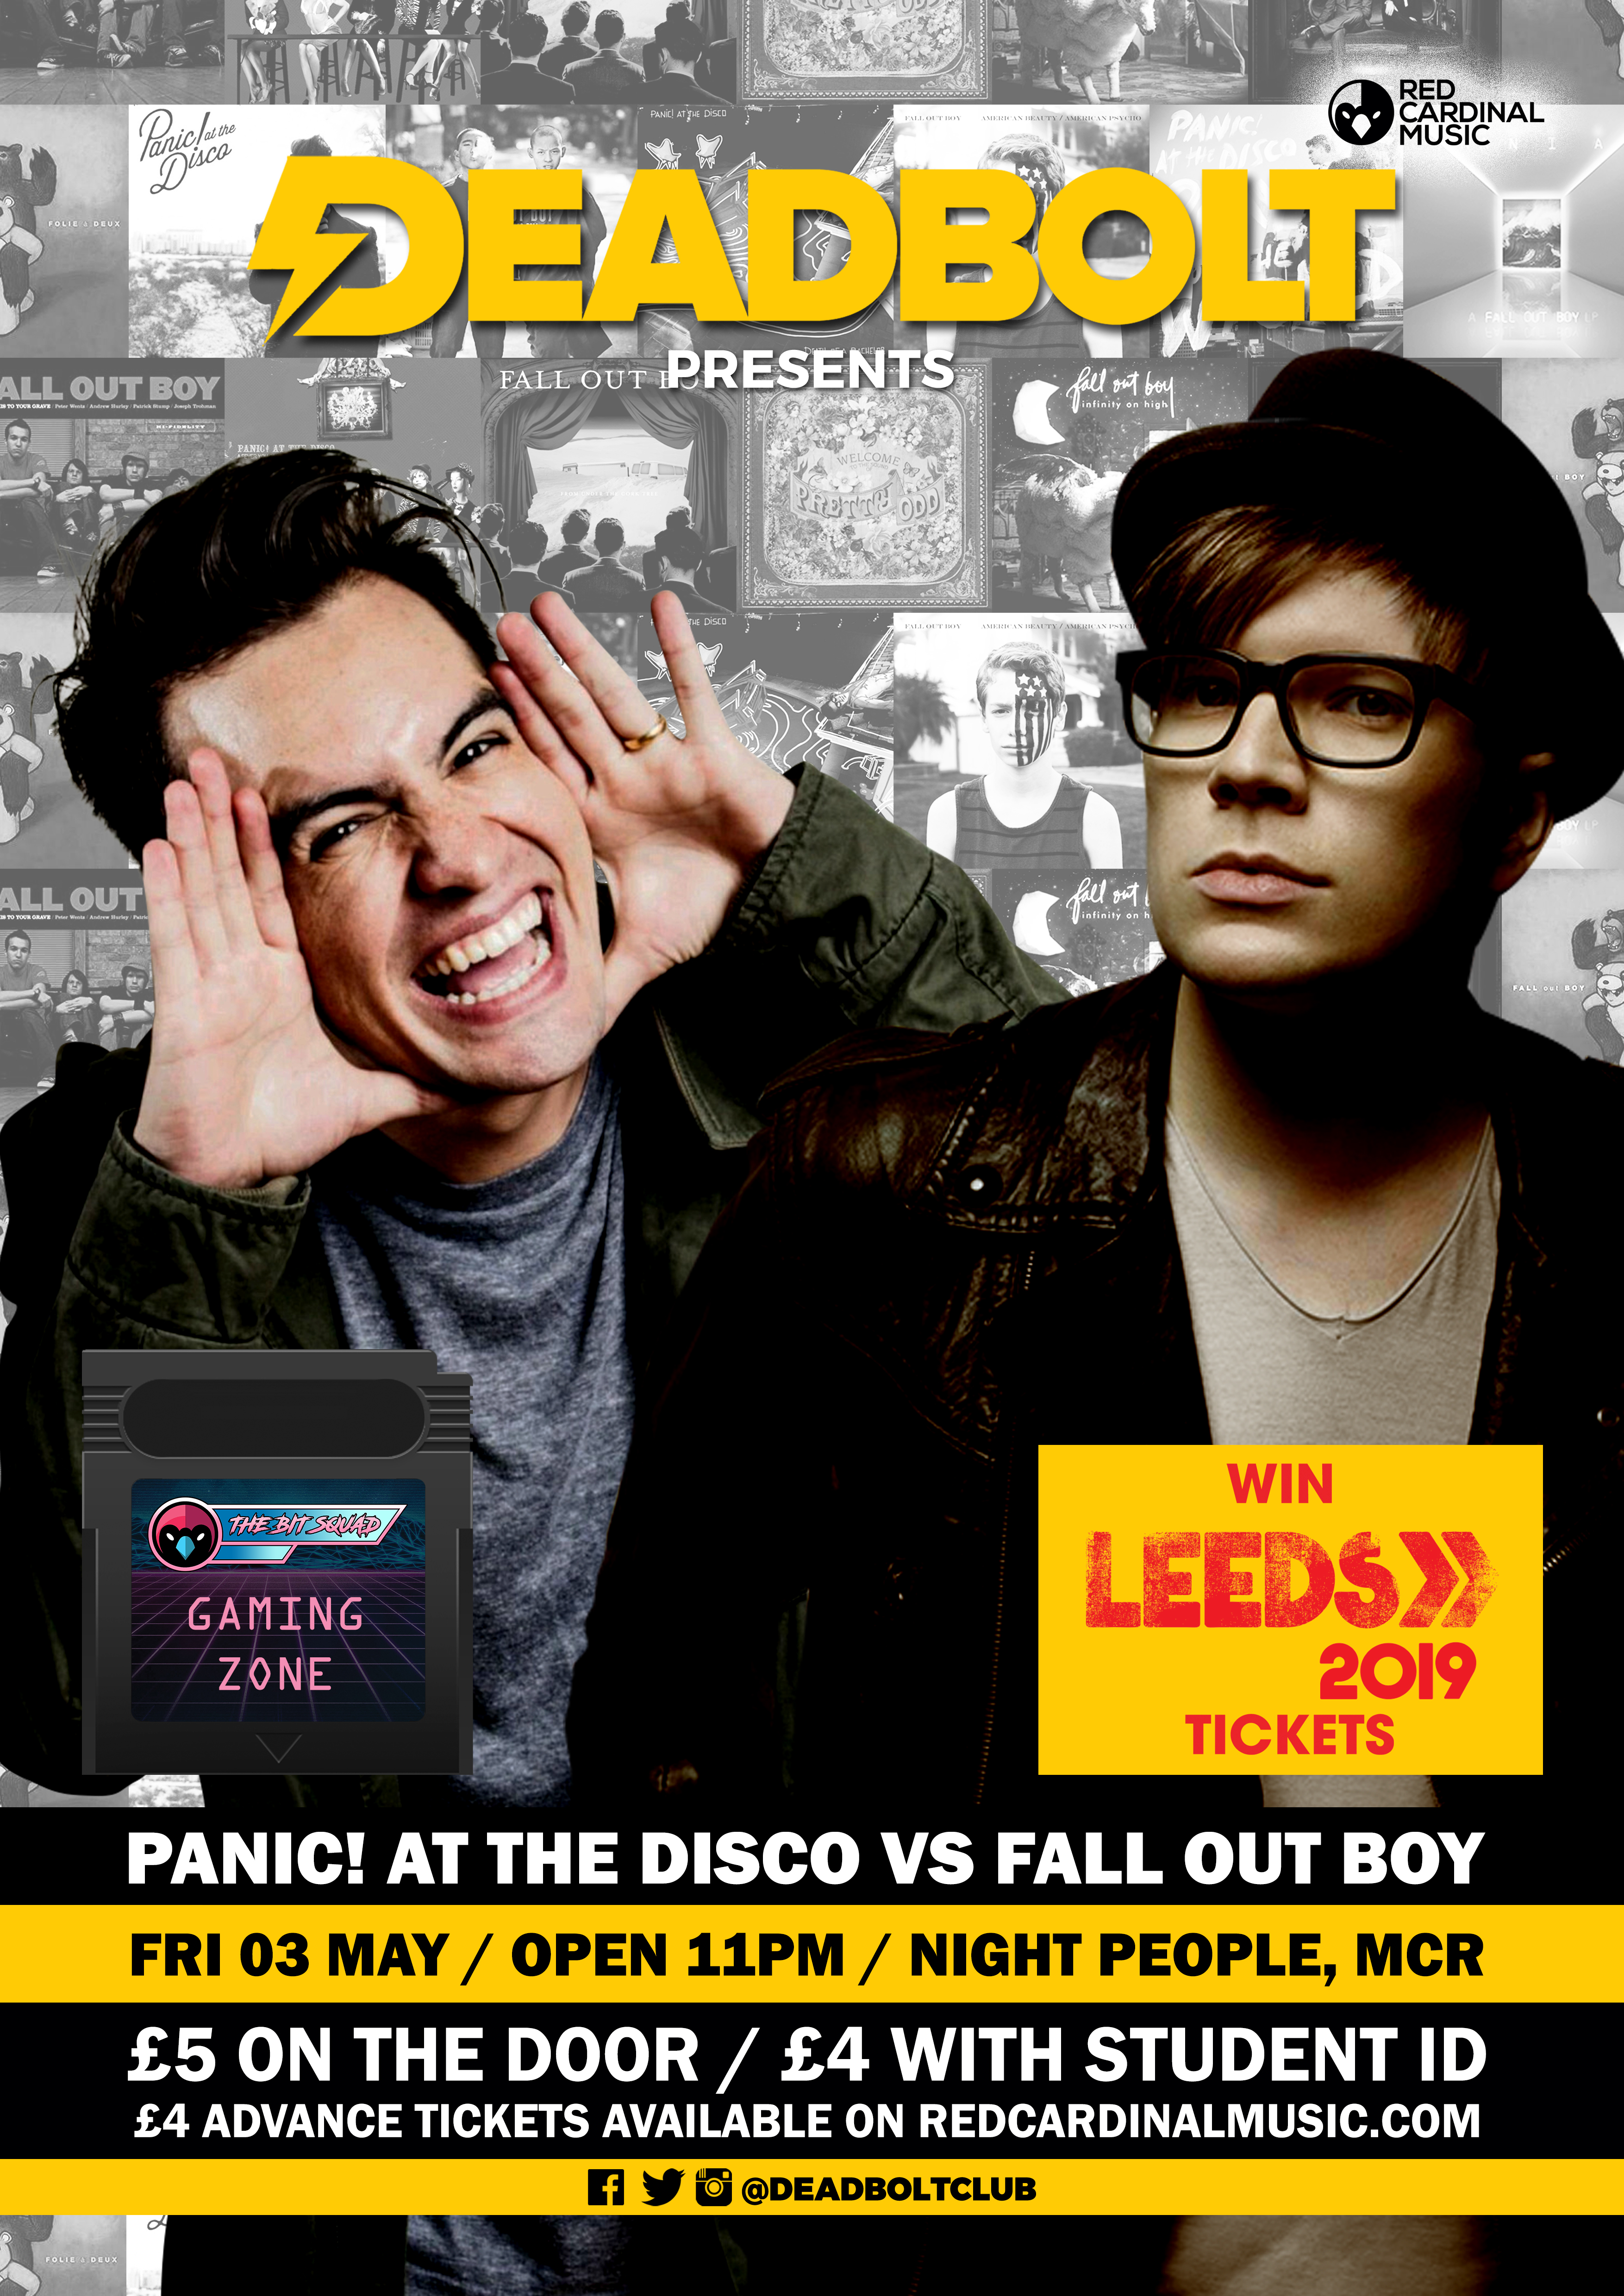 Deadbolt Manchester - Panic! At The Disco Vs Fall Out Boy Special - Night People Manchester - Red Cardinal Music